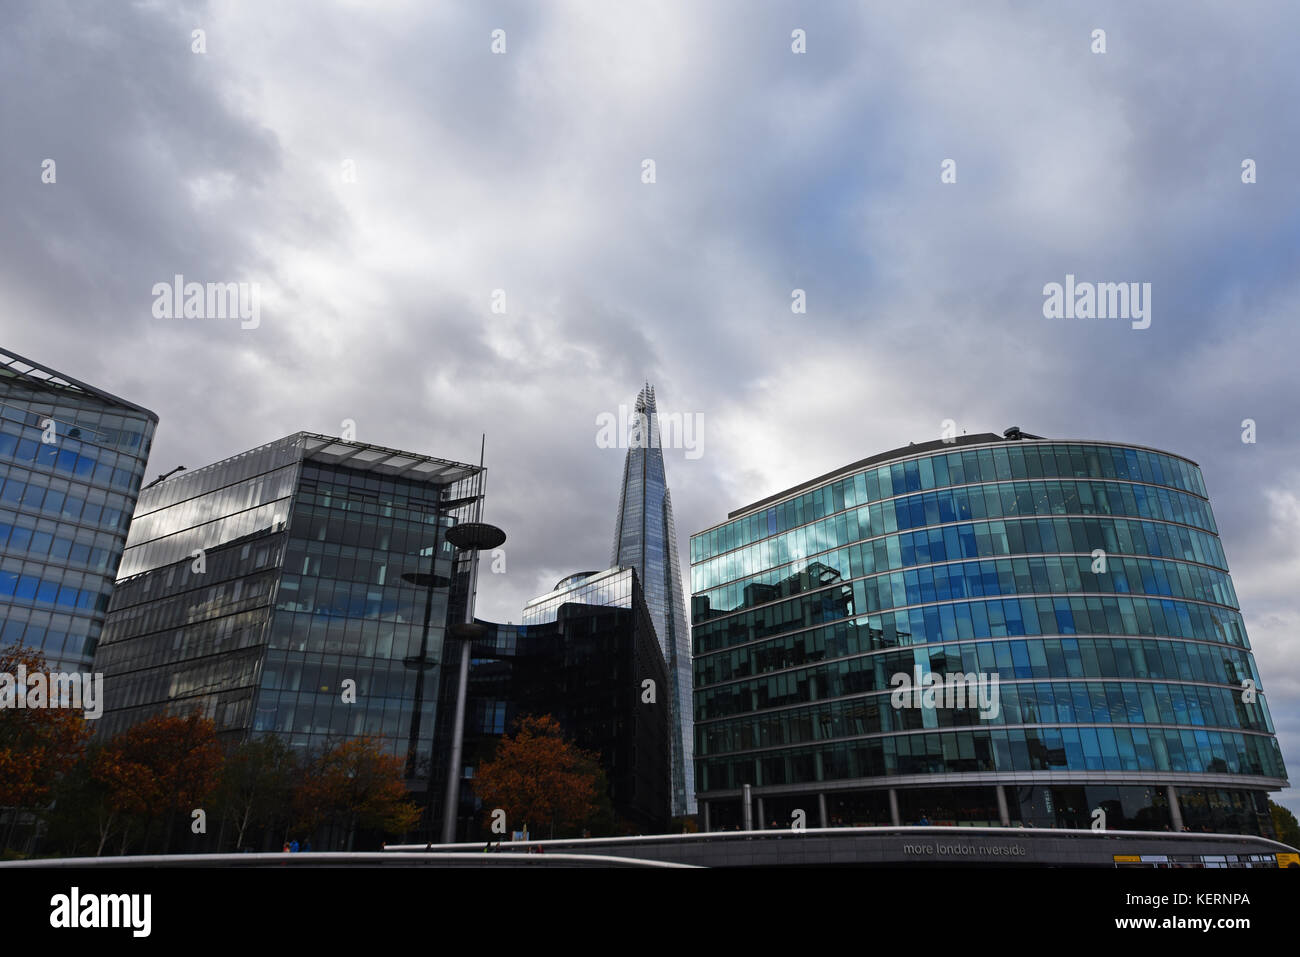 The Shard and More London Riverside buildings in autumn fall with red orange leaves on trees. Overcast and wintry. - Stock Image